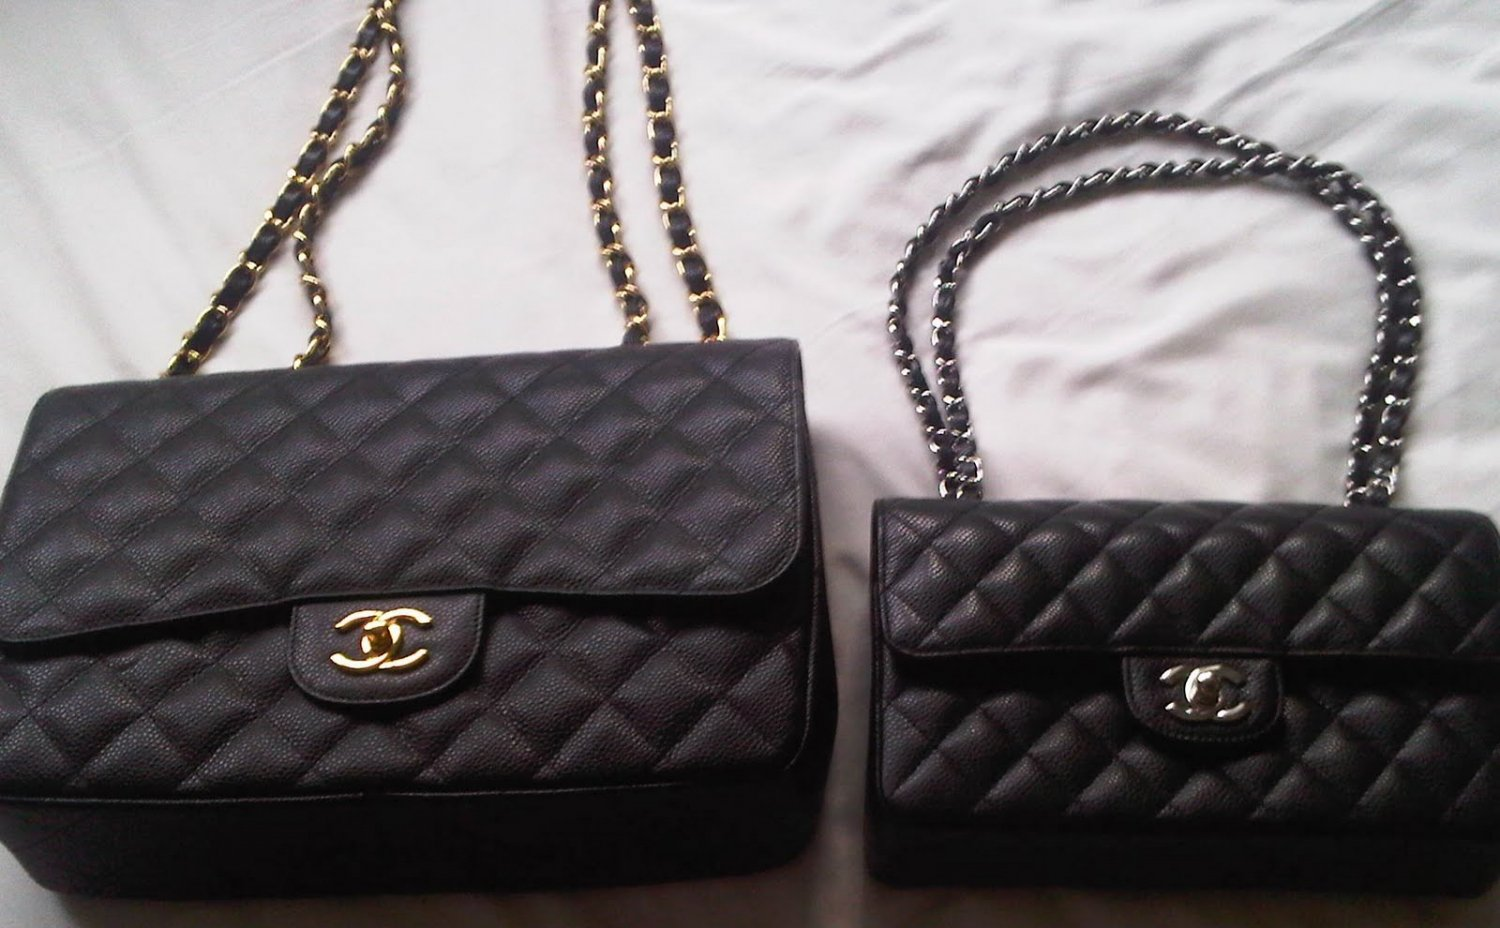 Chanel Bag With Gold Hardware Do You Know Which City Would Have The Best Price And Vat Refund What Is Difference Between Two Styles